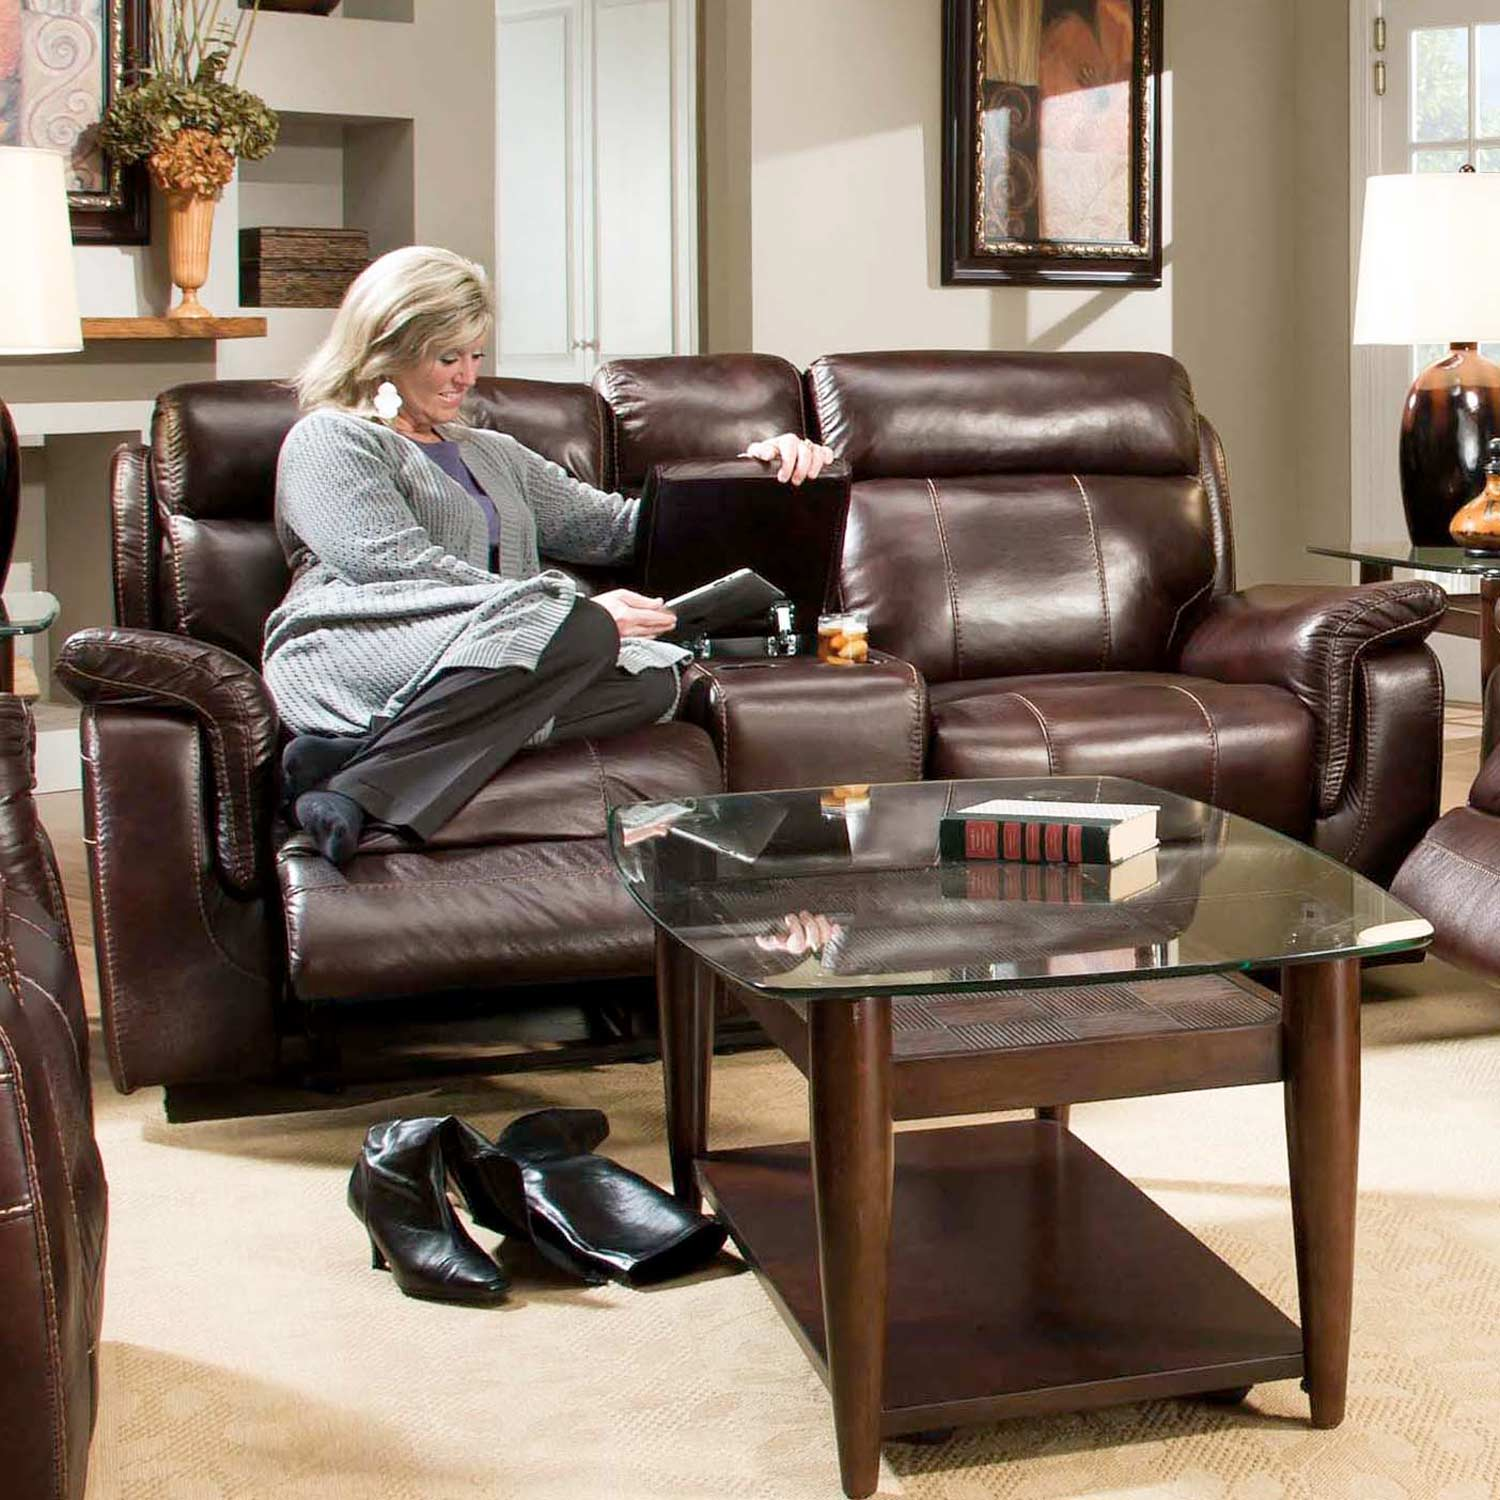 Sequoia Recliner Loveseat - Contrast Stitching, Lowey Tobacco